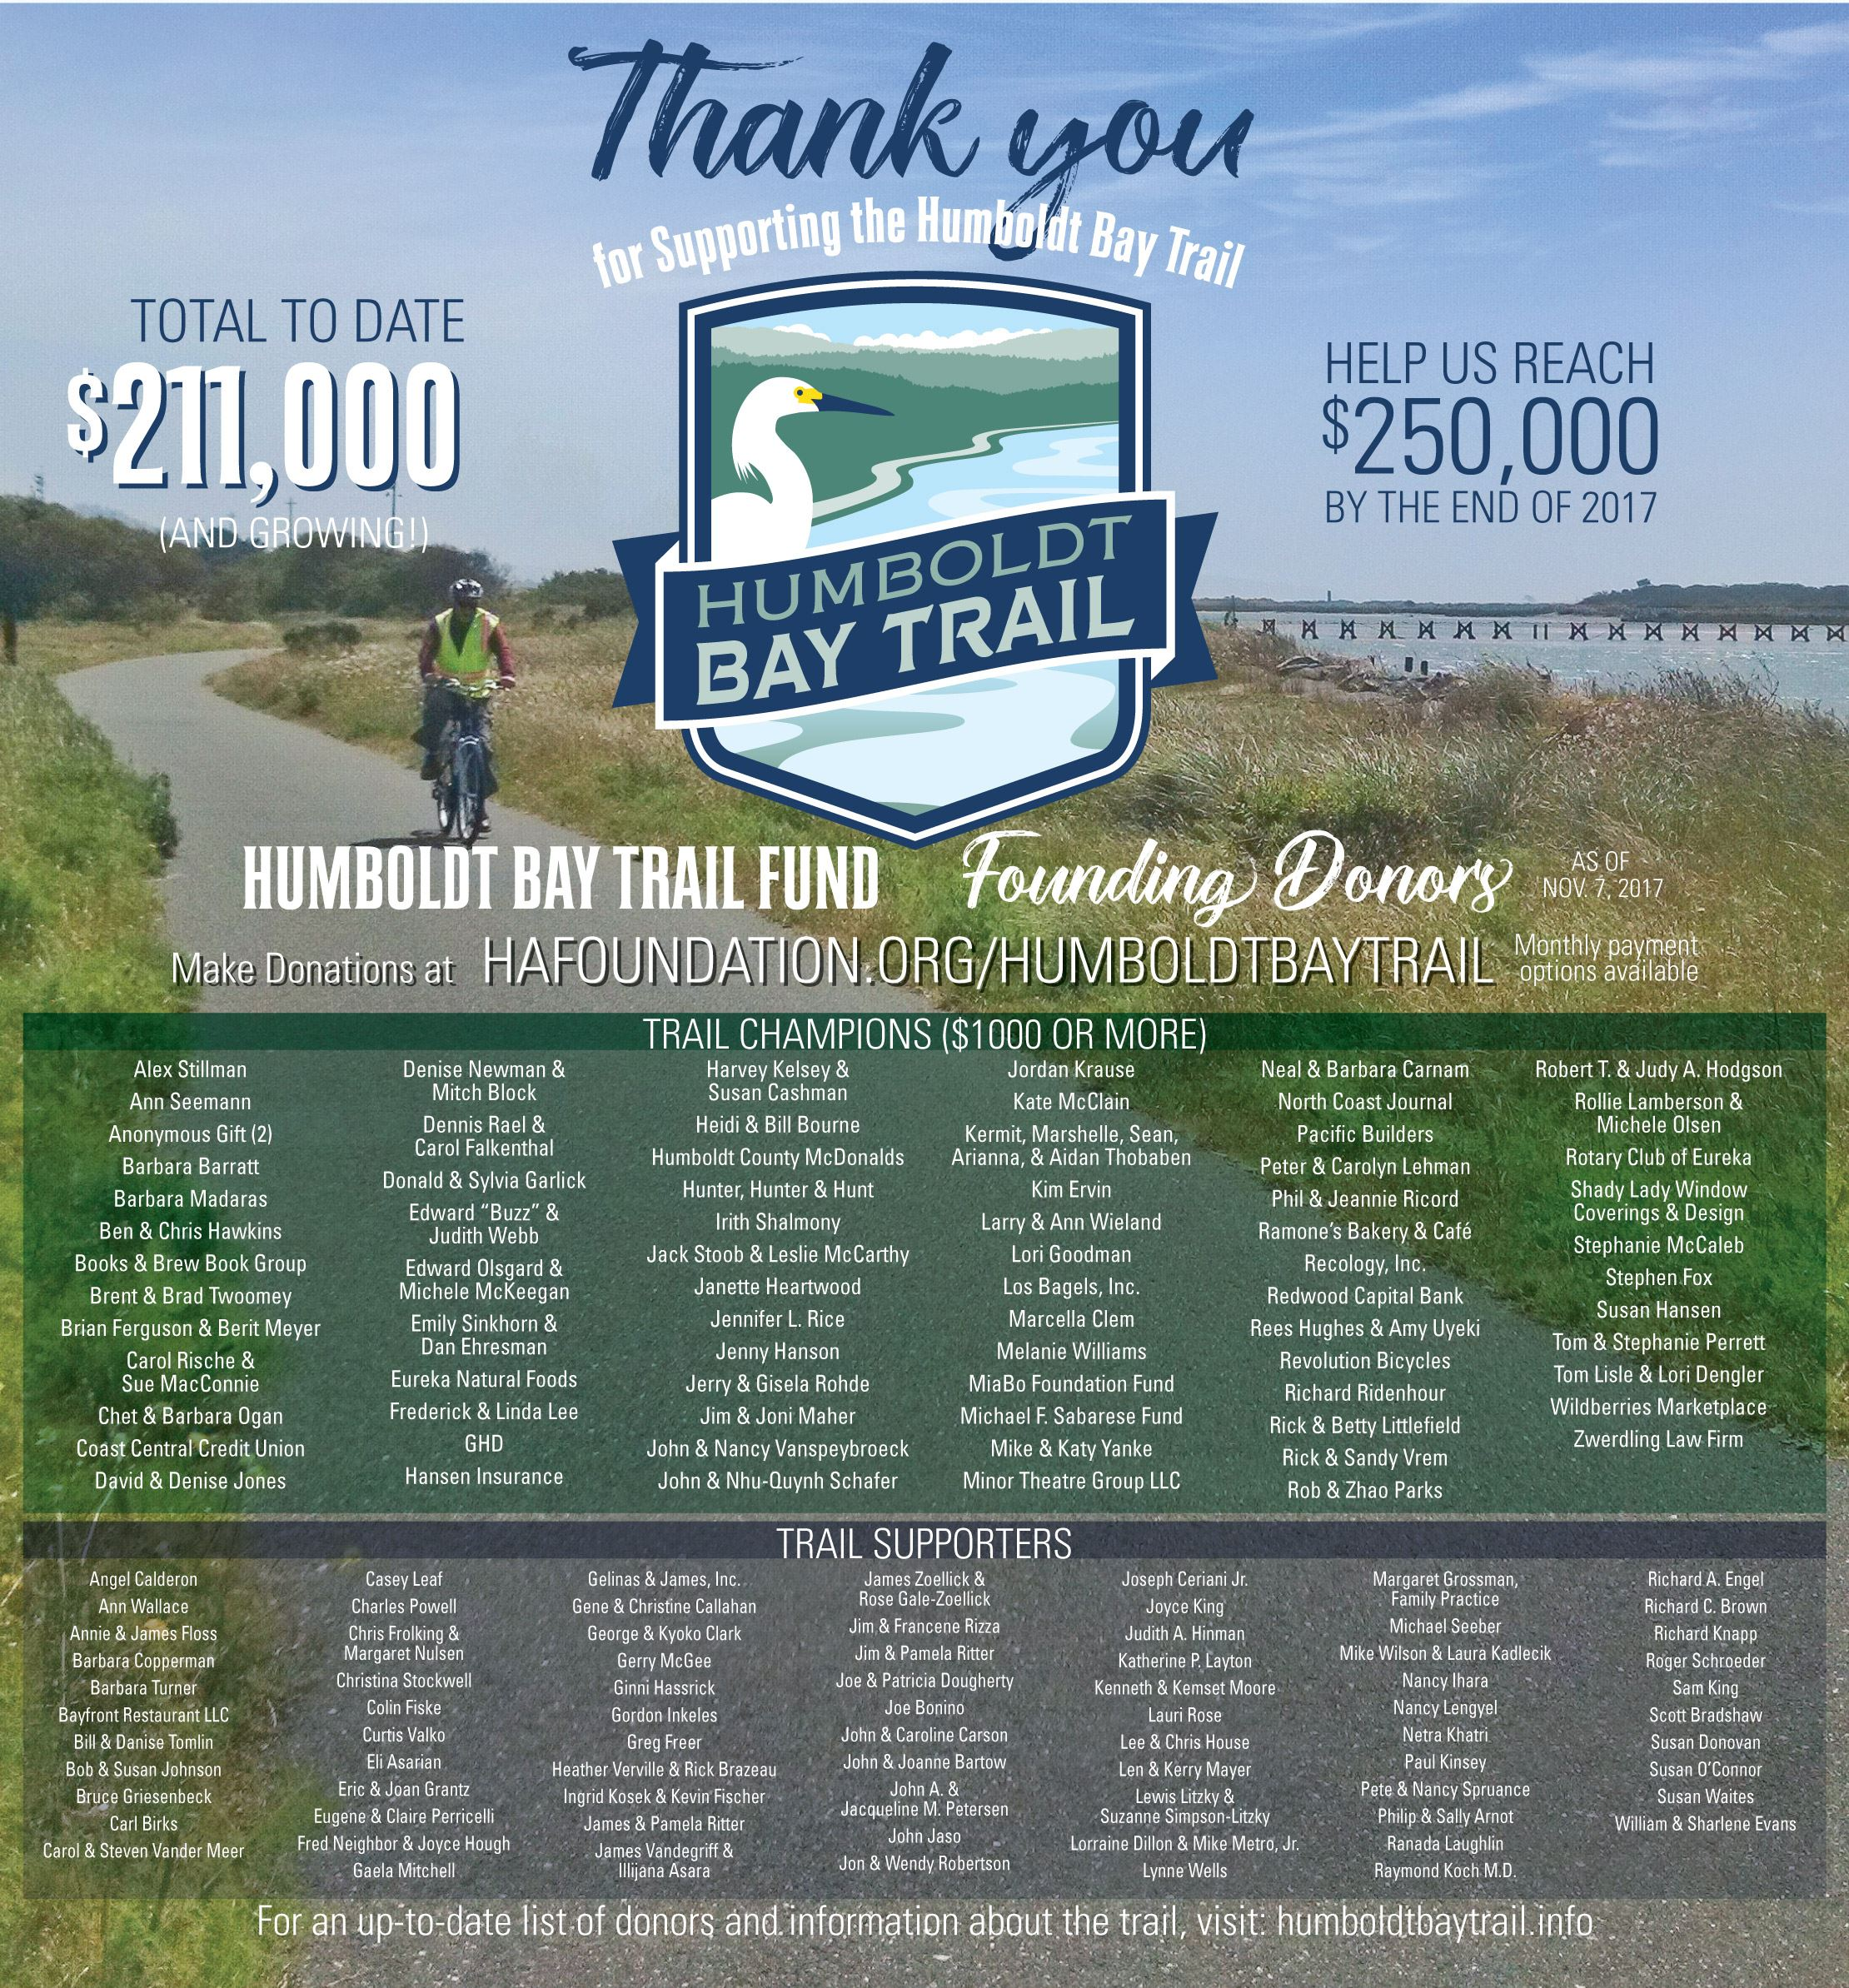 Thank You Humboldt Bay Trail Supporters as of November 8, 2017